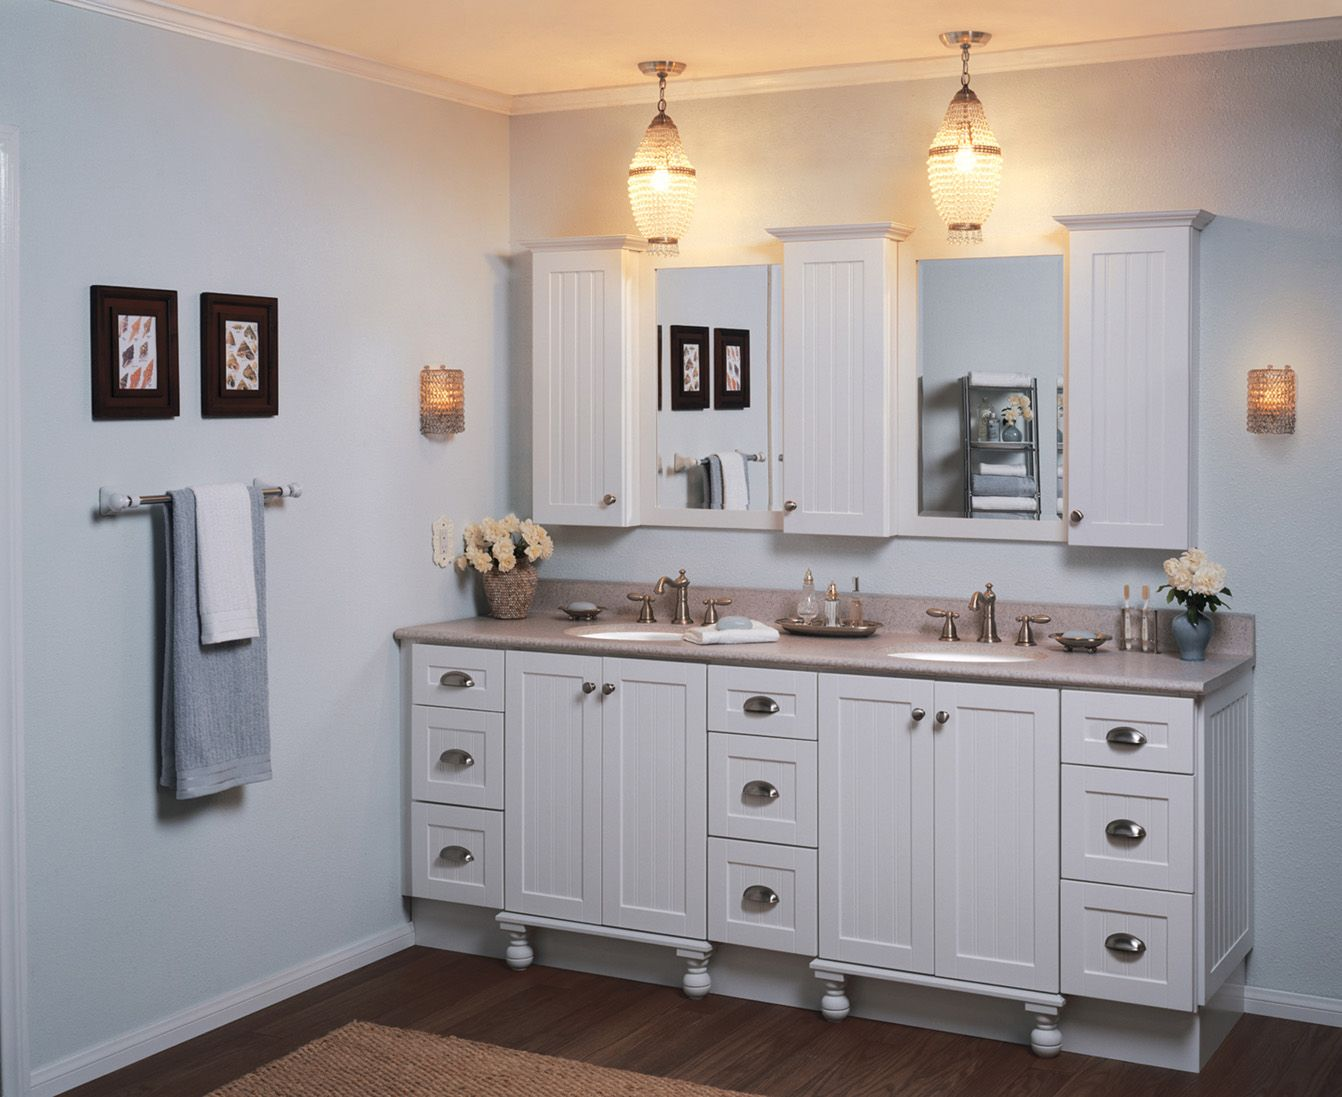 Bathroom Vanities And Medicine Cabinets bathroom mirrors over vanity | ideas using mirrors, wall hutches